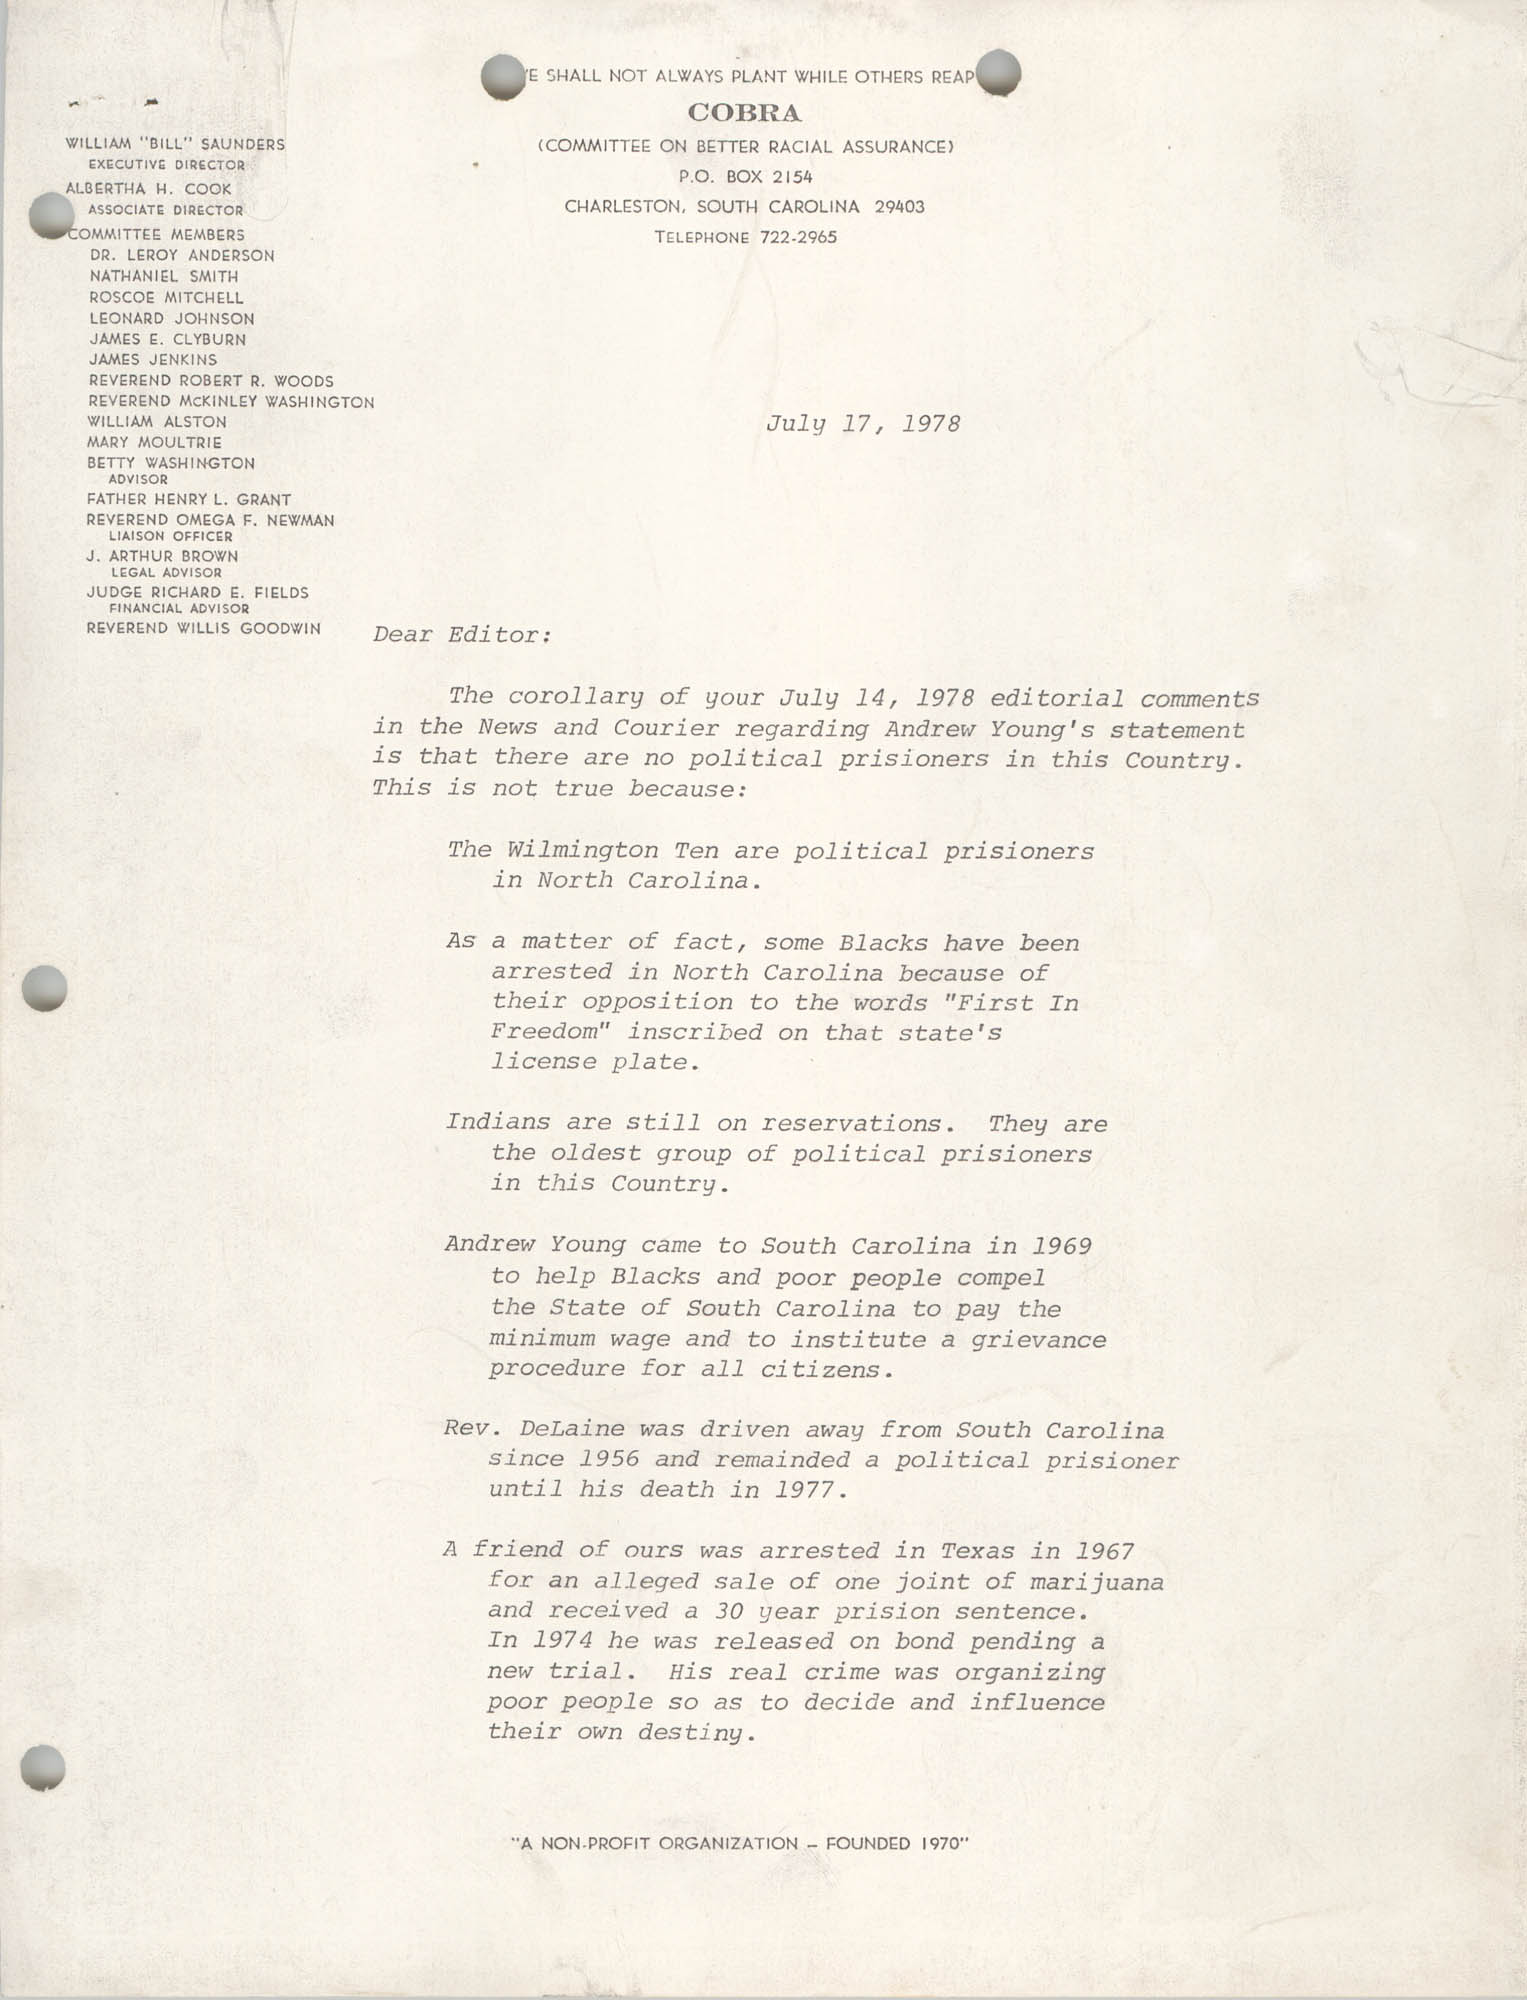 Letter from William Saunders, July 17, 1978